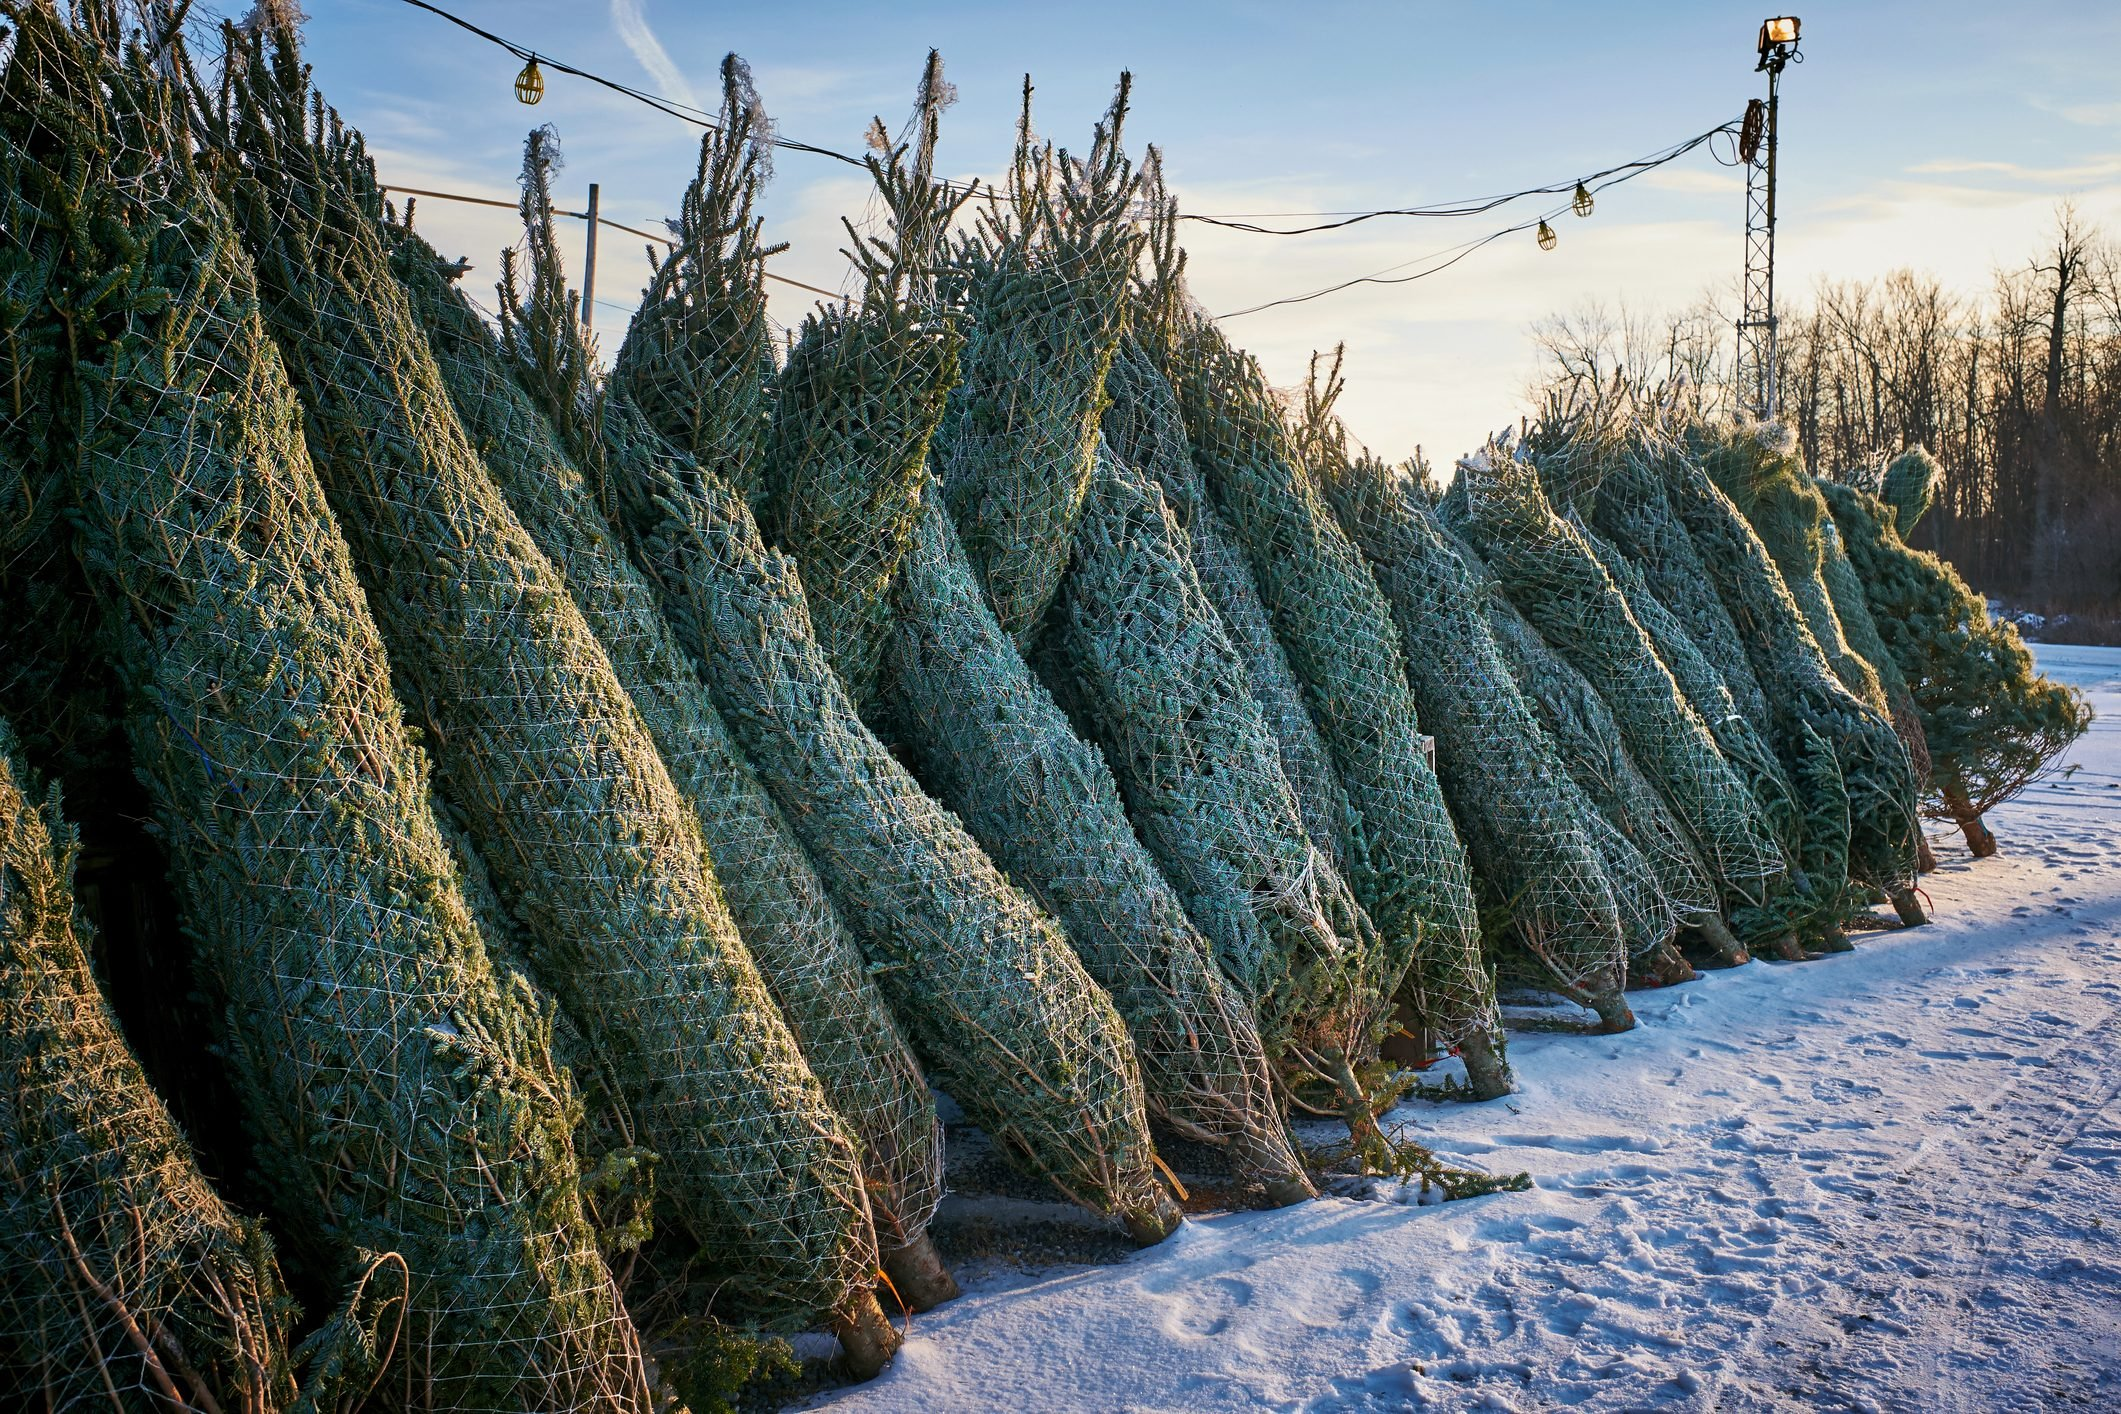 Bundles of fresh-cut spruce trees for sale at a Christmas tree lot at the beginning of winter, and the Holiday Season.